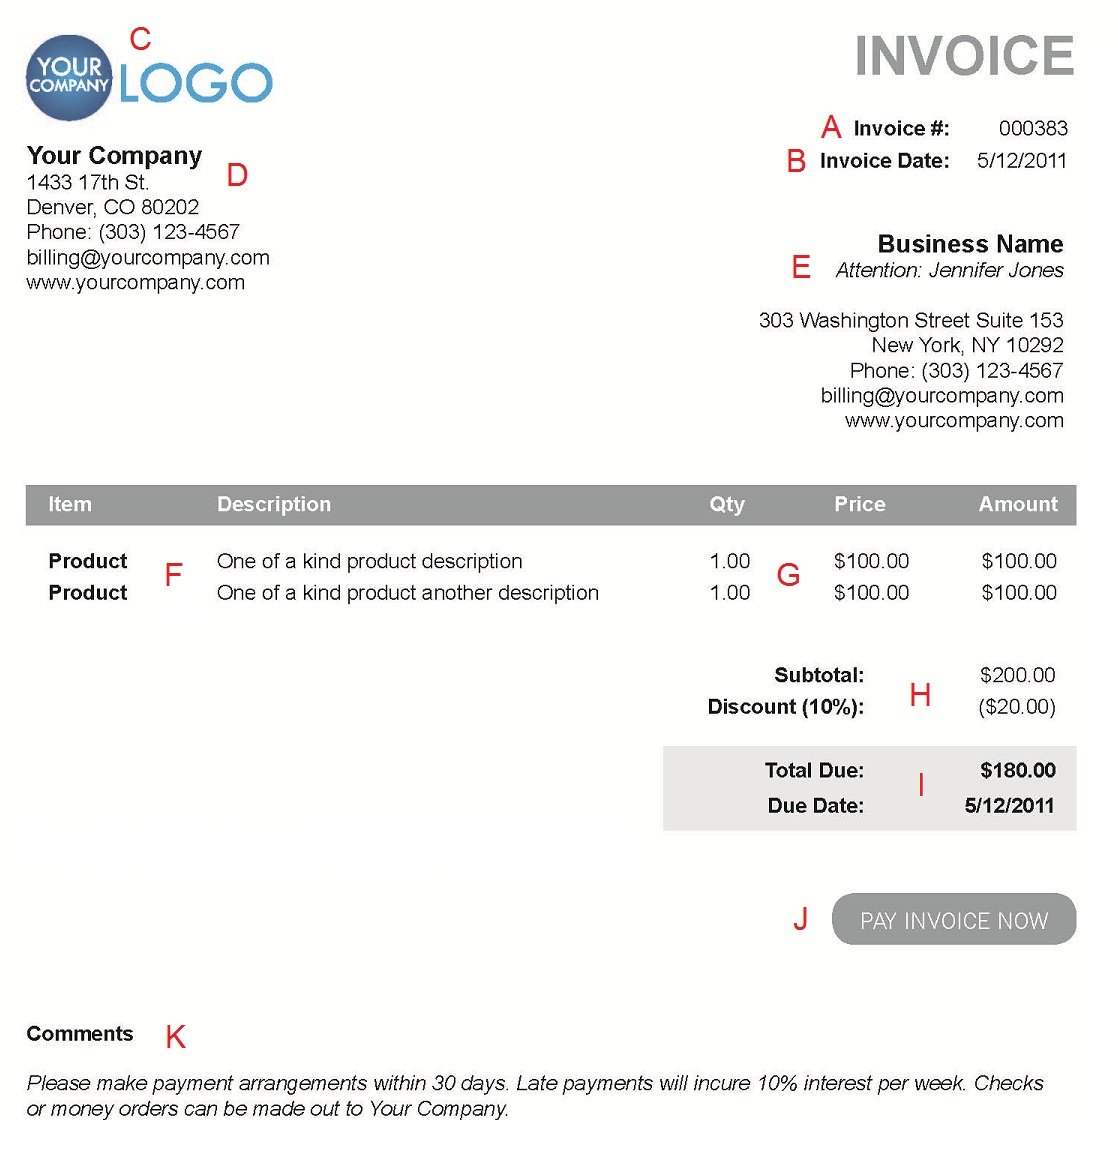 Ultrablogus  Winsome The  Different Sections Of An Electronic Payment Invoice With Hot A  With Cool Freelance Invoice Template Word Also Printable Invoice Forms In Addition Invoice Freelance And How To Write An Invoice Letter As Well As Custom Invoice Pads Additionally Invoice With Paypal From Paysimplecom With Ultrablogus  Hot The  Different Sections Of An Electronic Payment Invoice With Cool A  And Winsome Freelance Invoice Template Word Also Printable Invoice Forms In Addition Invoice Freelance From Paysimplecom